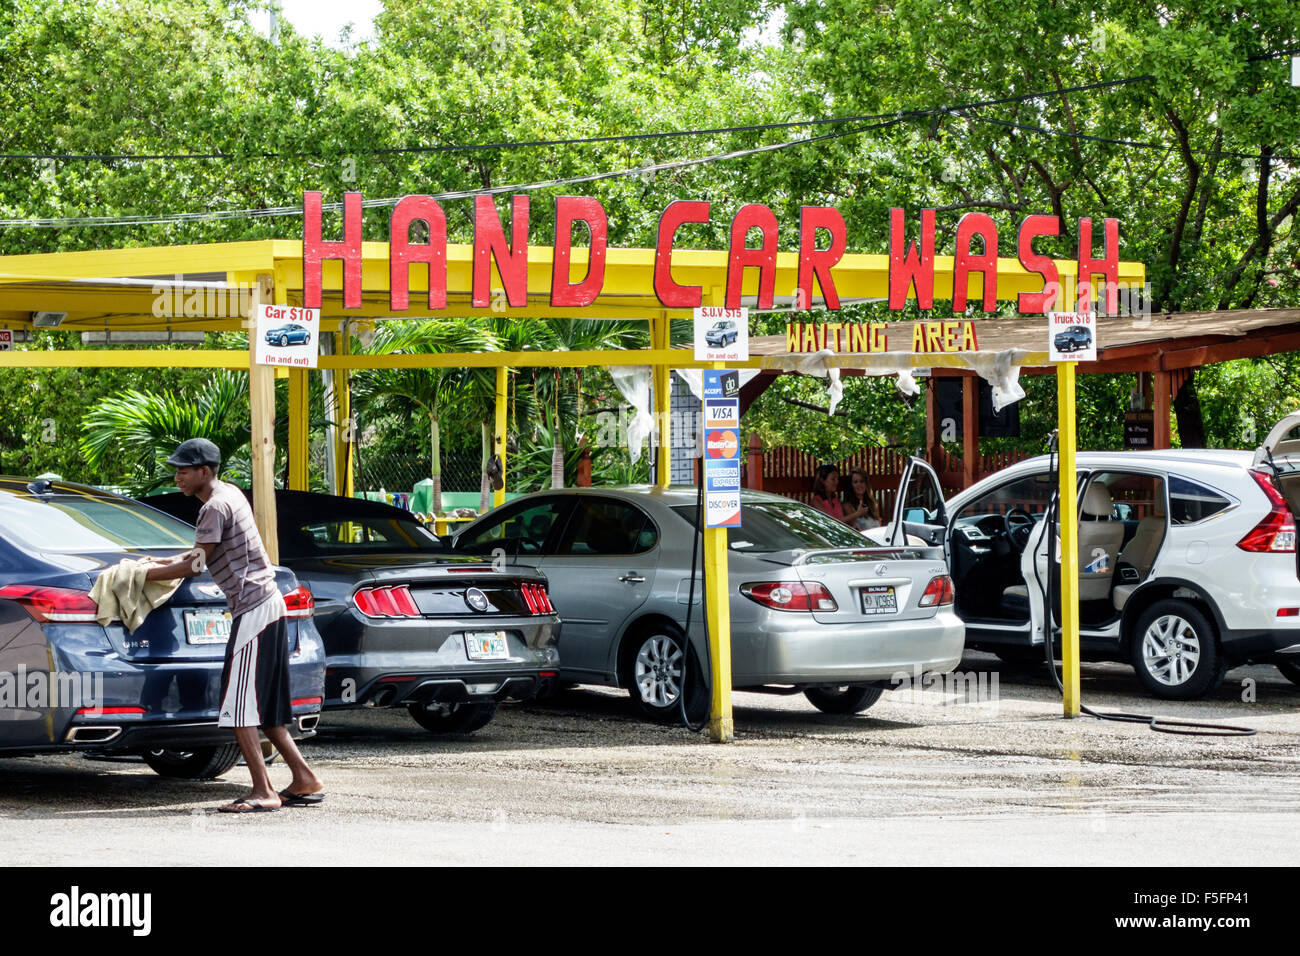 Man working car wash in stock photos man working car wash in stock fort lauderdale ft florida hand car wash black man employee job wiping cars service outside solutioingenieria Images